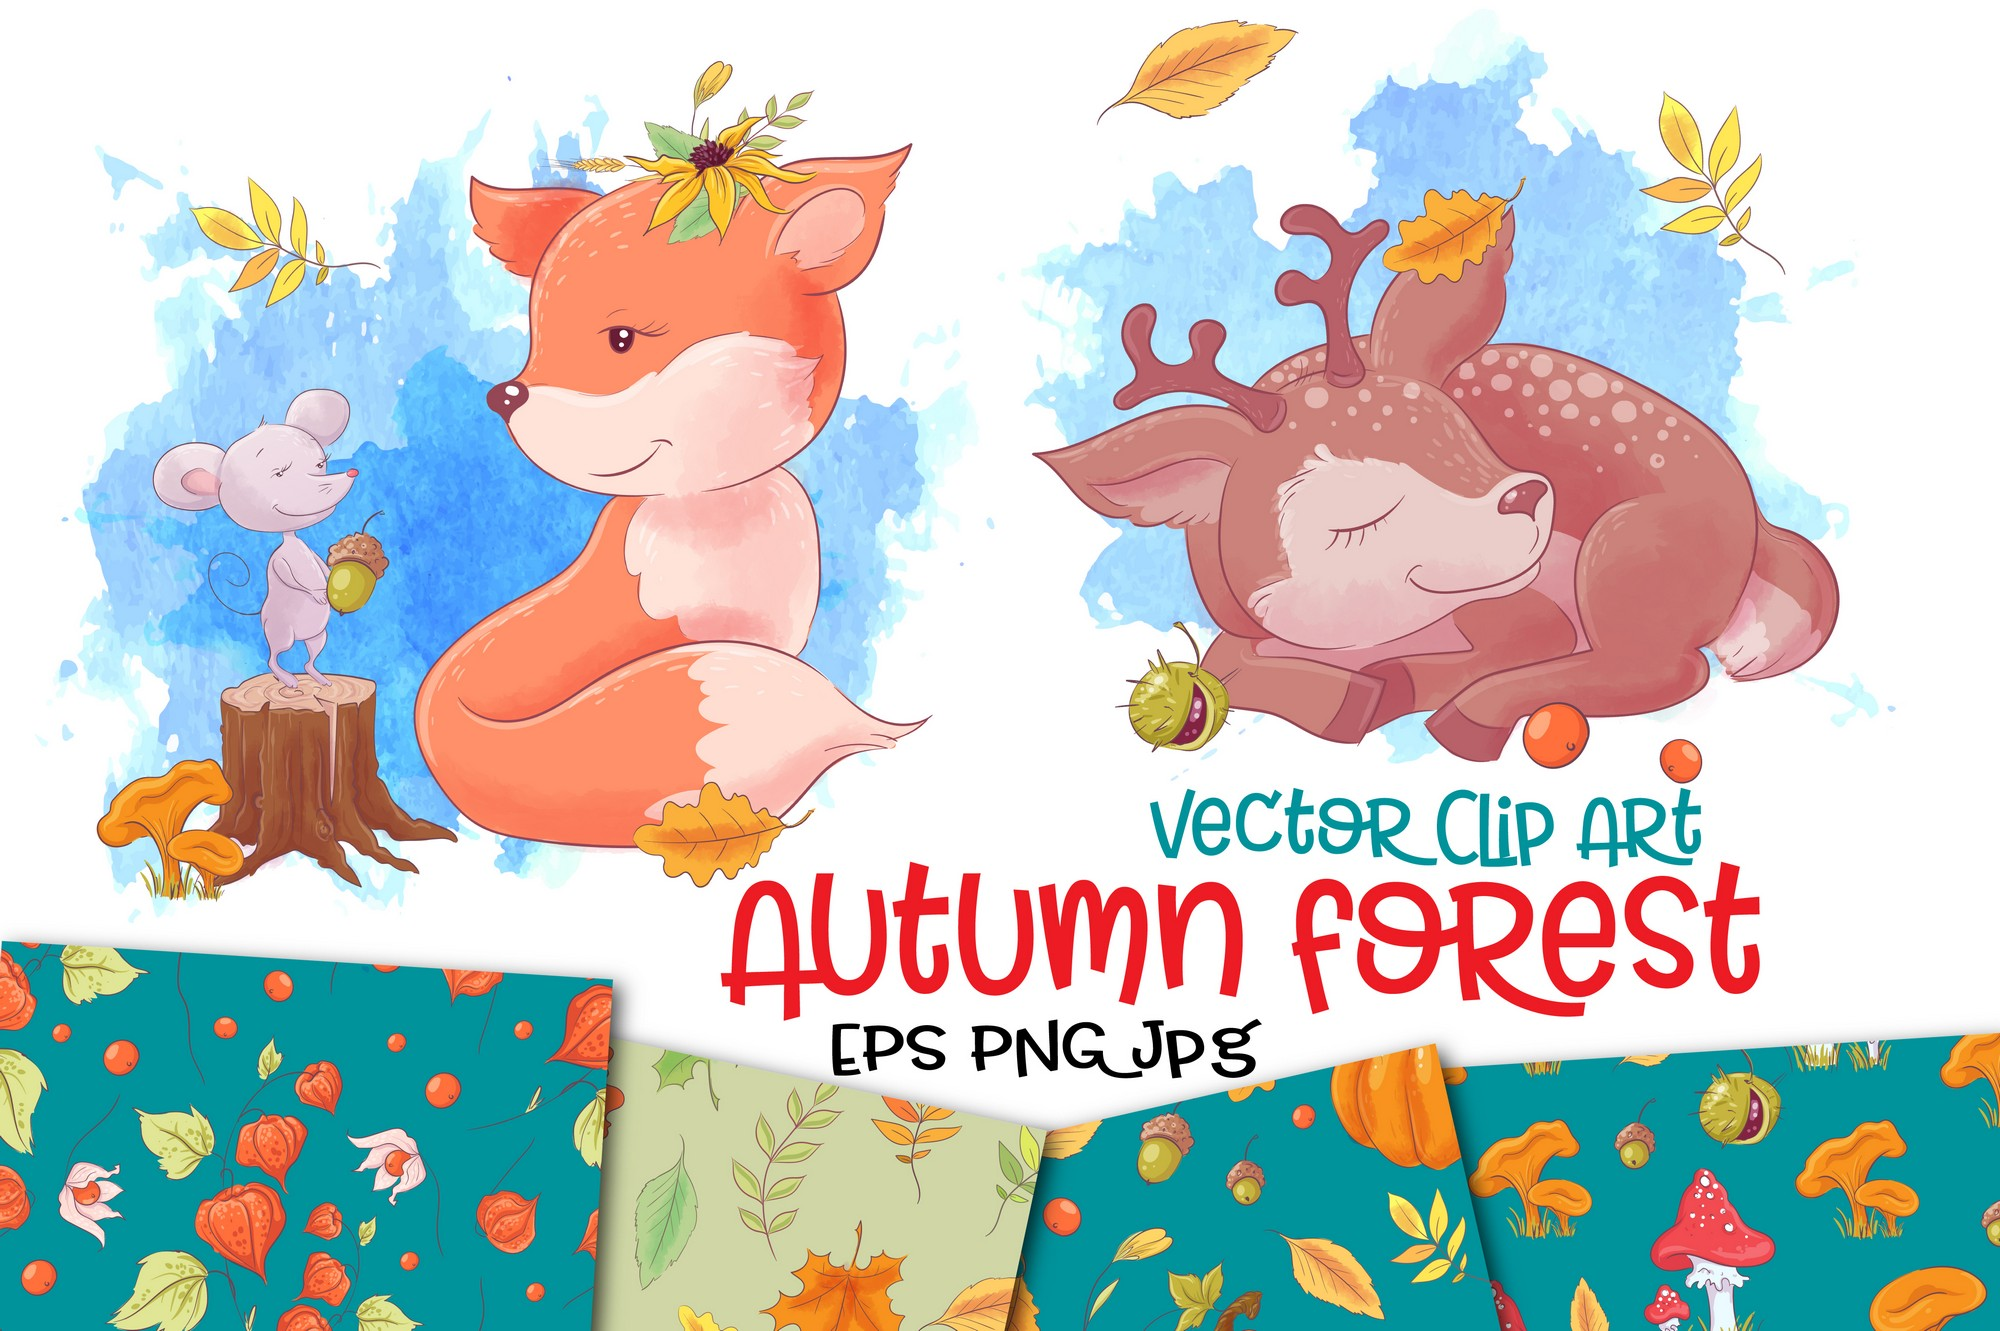 Autumn forest vector clip art example image 1